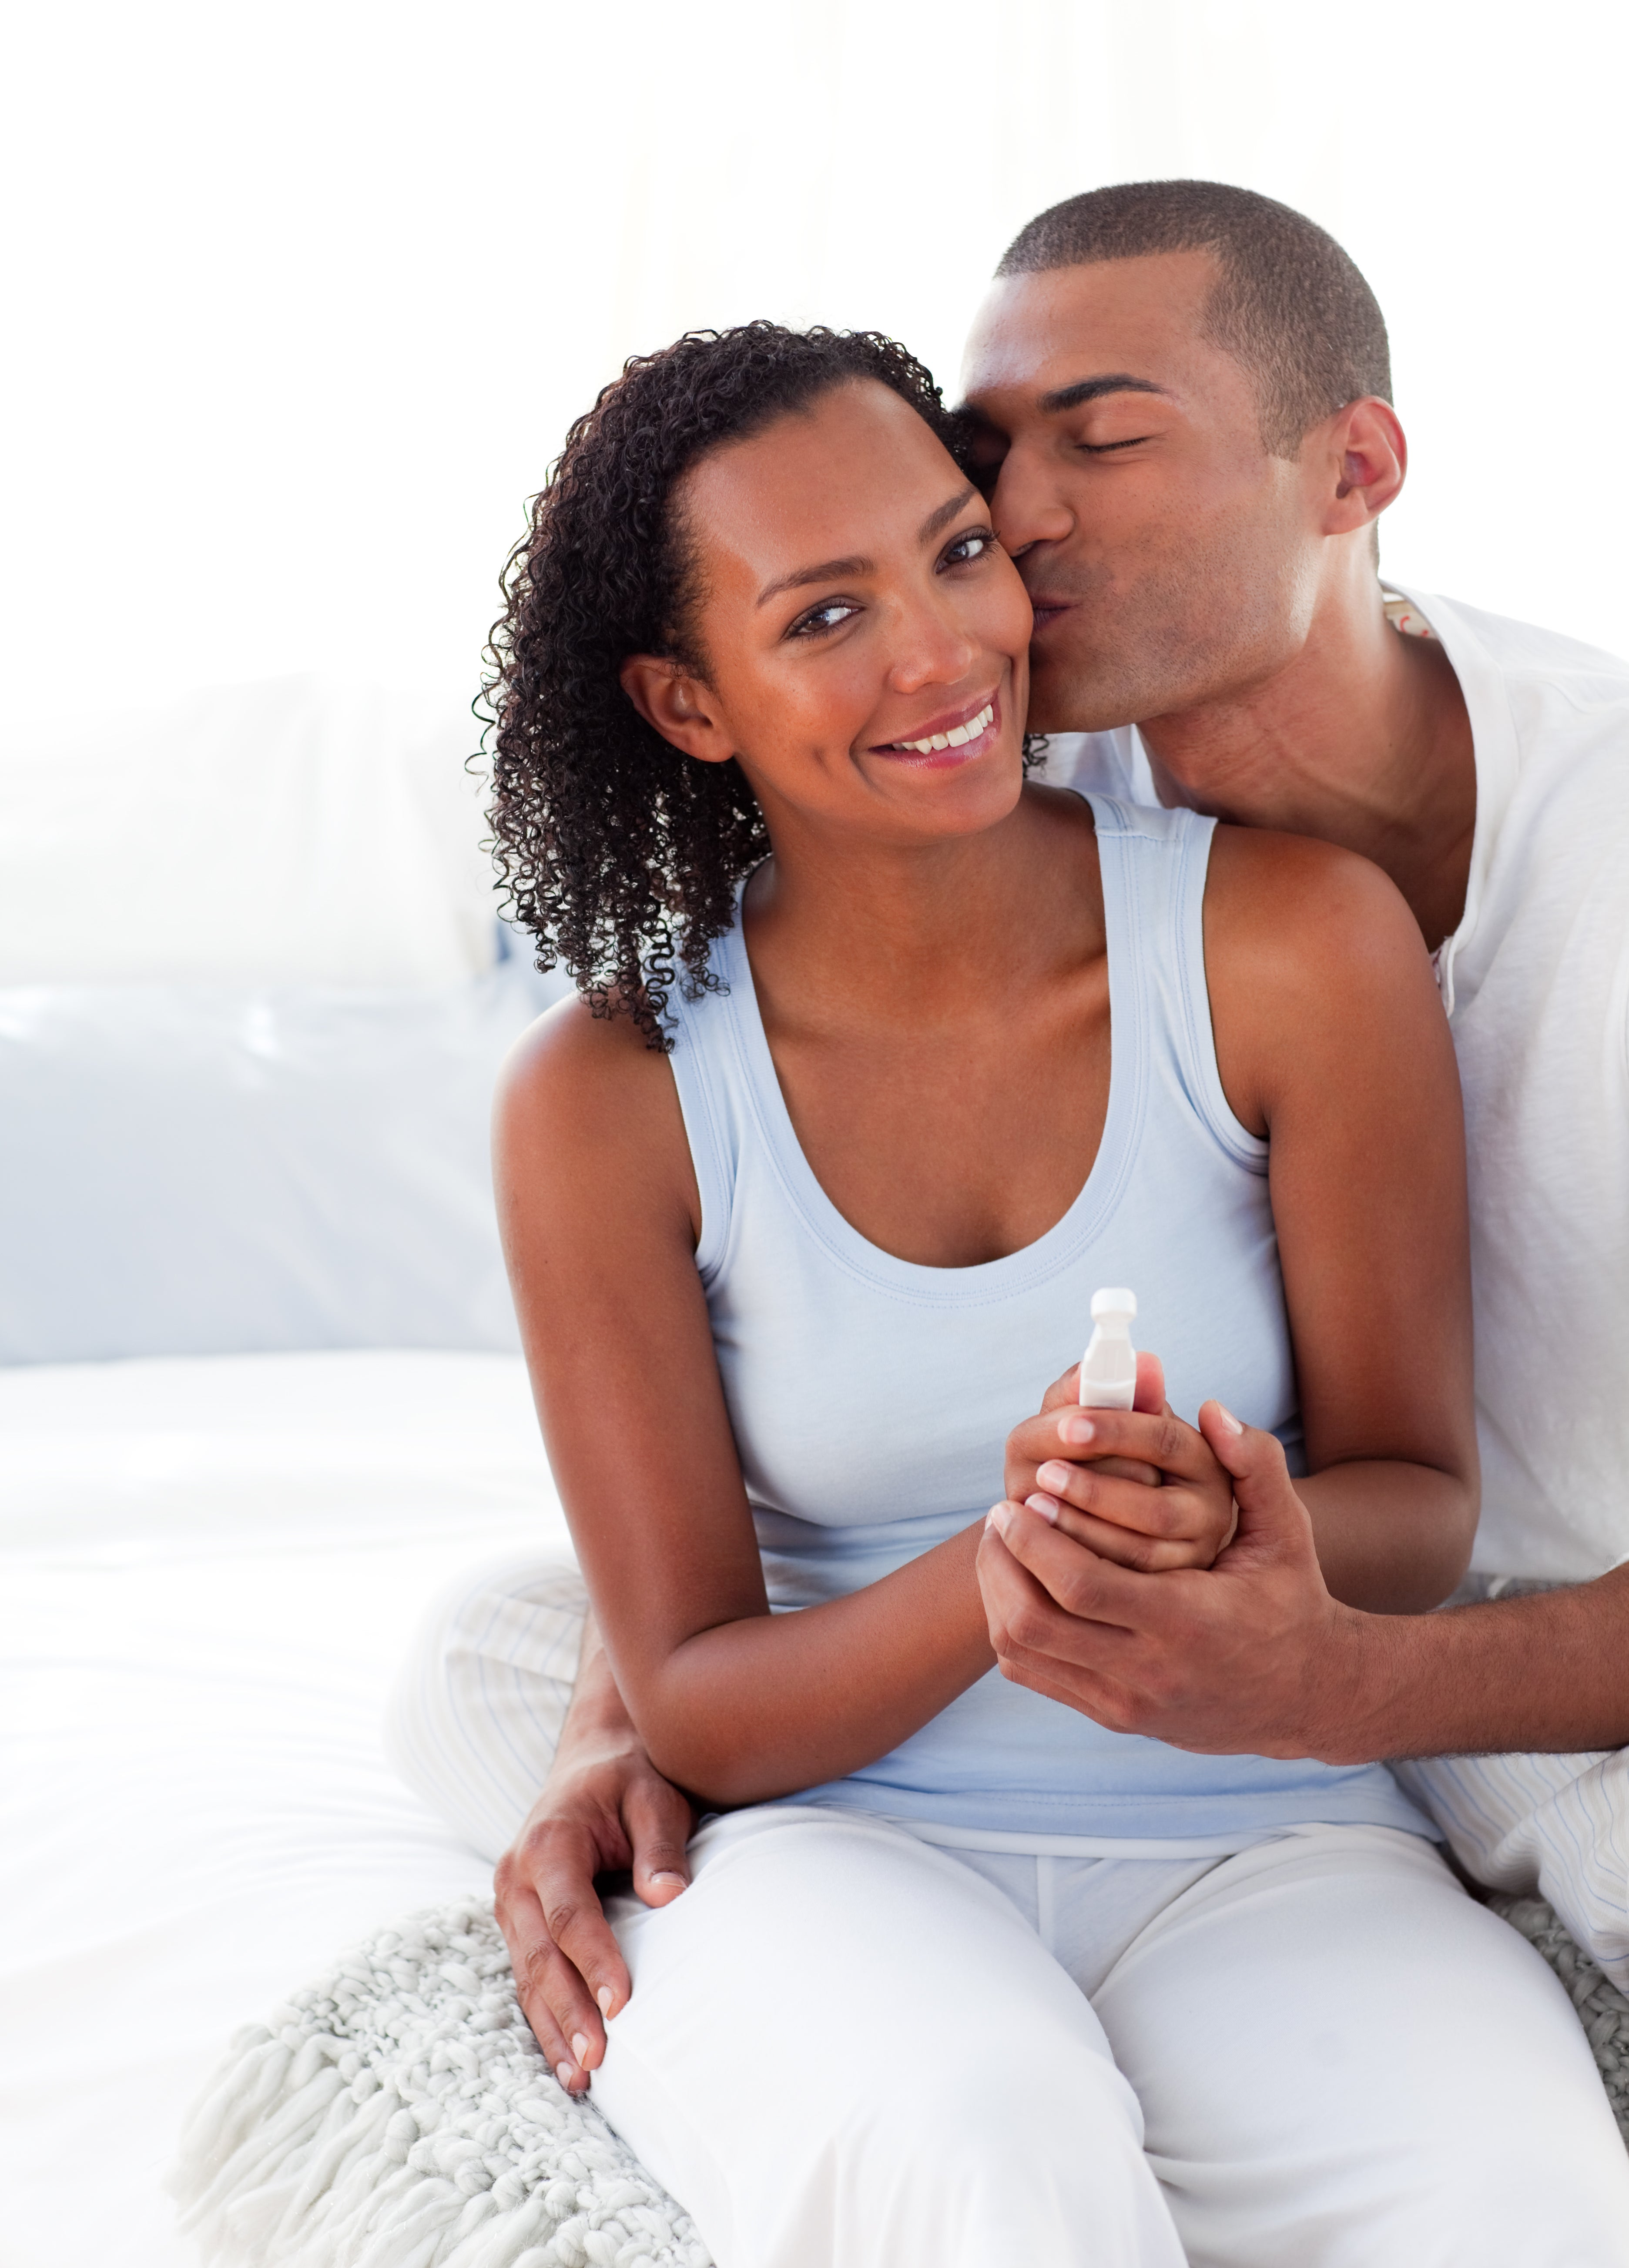 A couple trying to get pregnant takes a pregnancy test